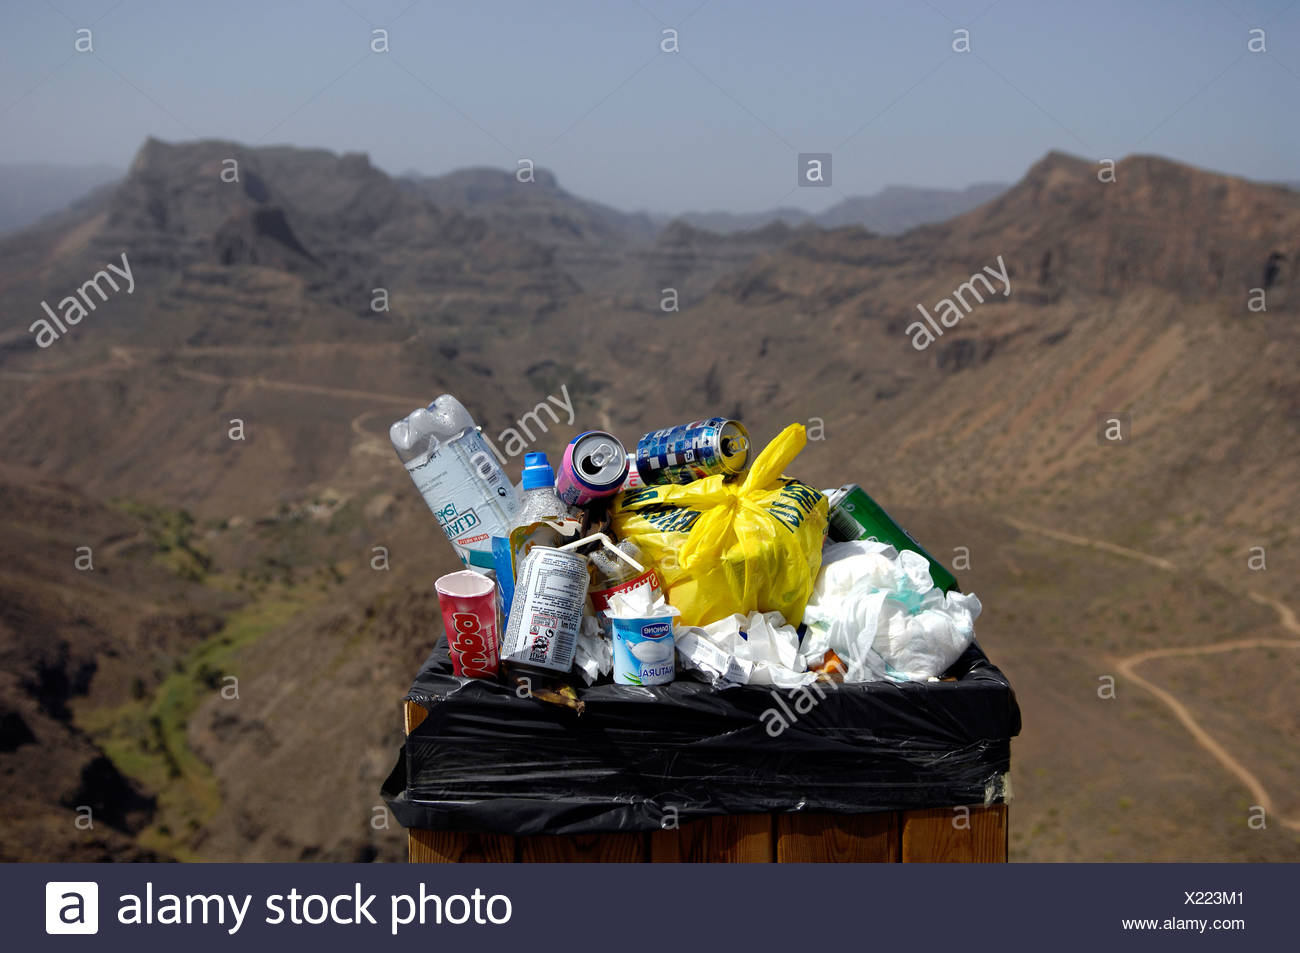 Crammed trash can in nature reserve, Gran Canaria, Canaries, Spain Stock Photo